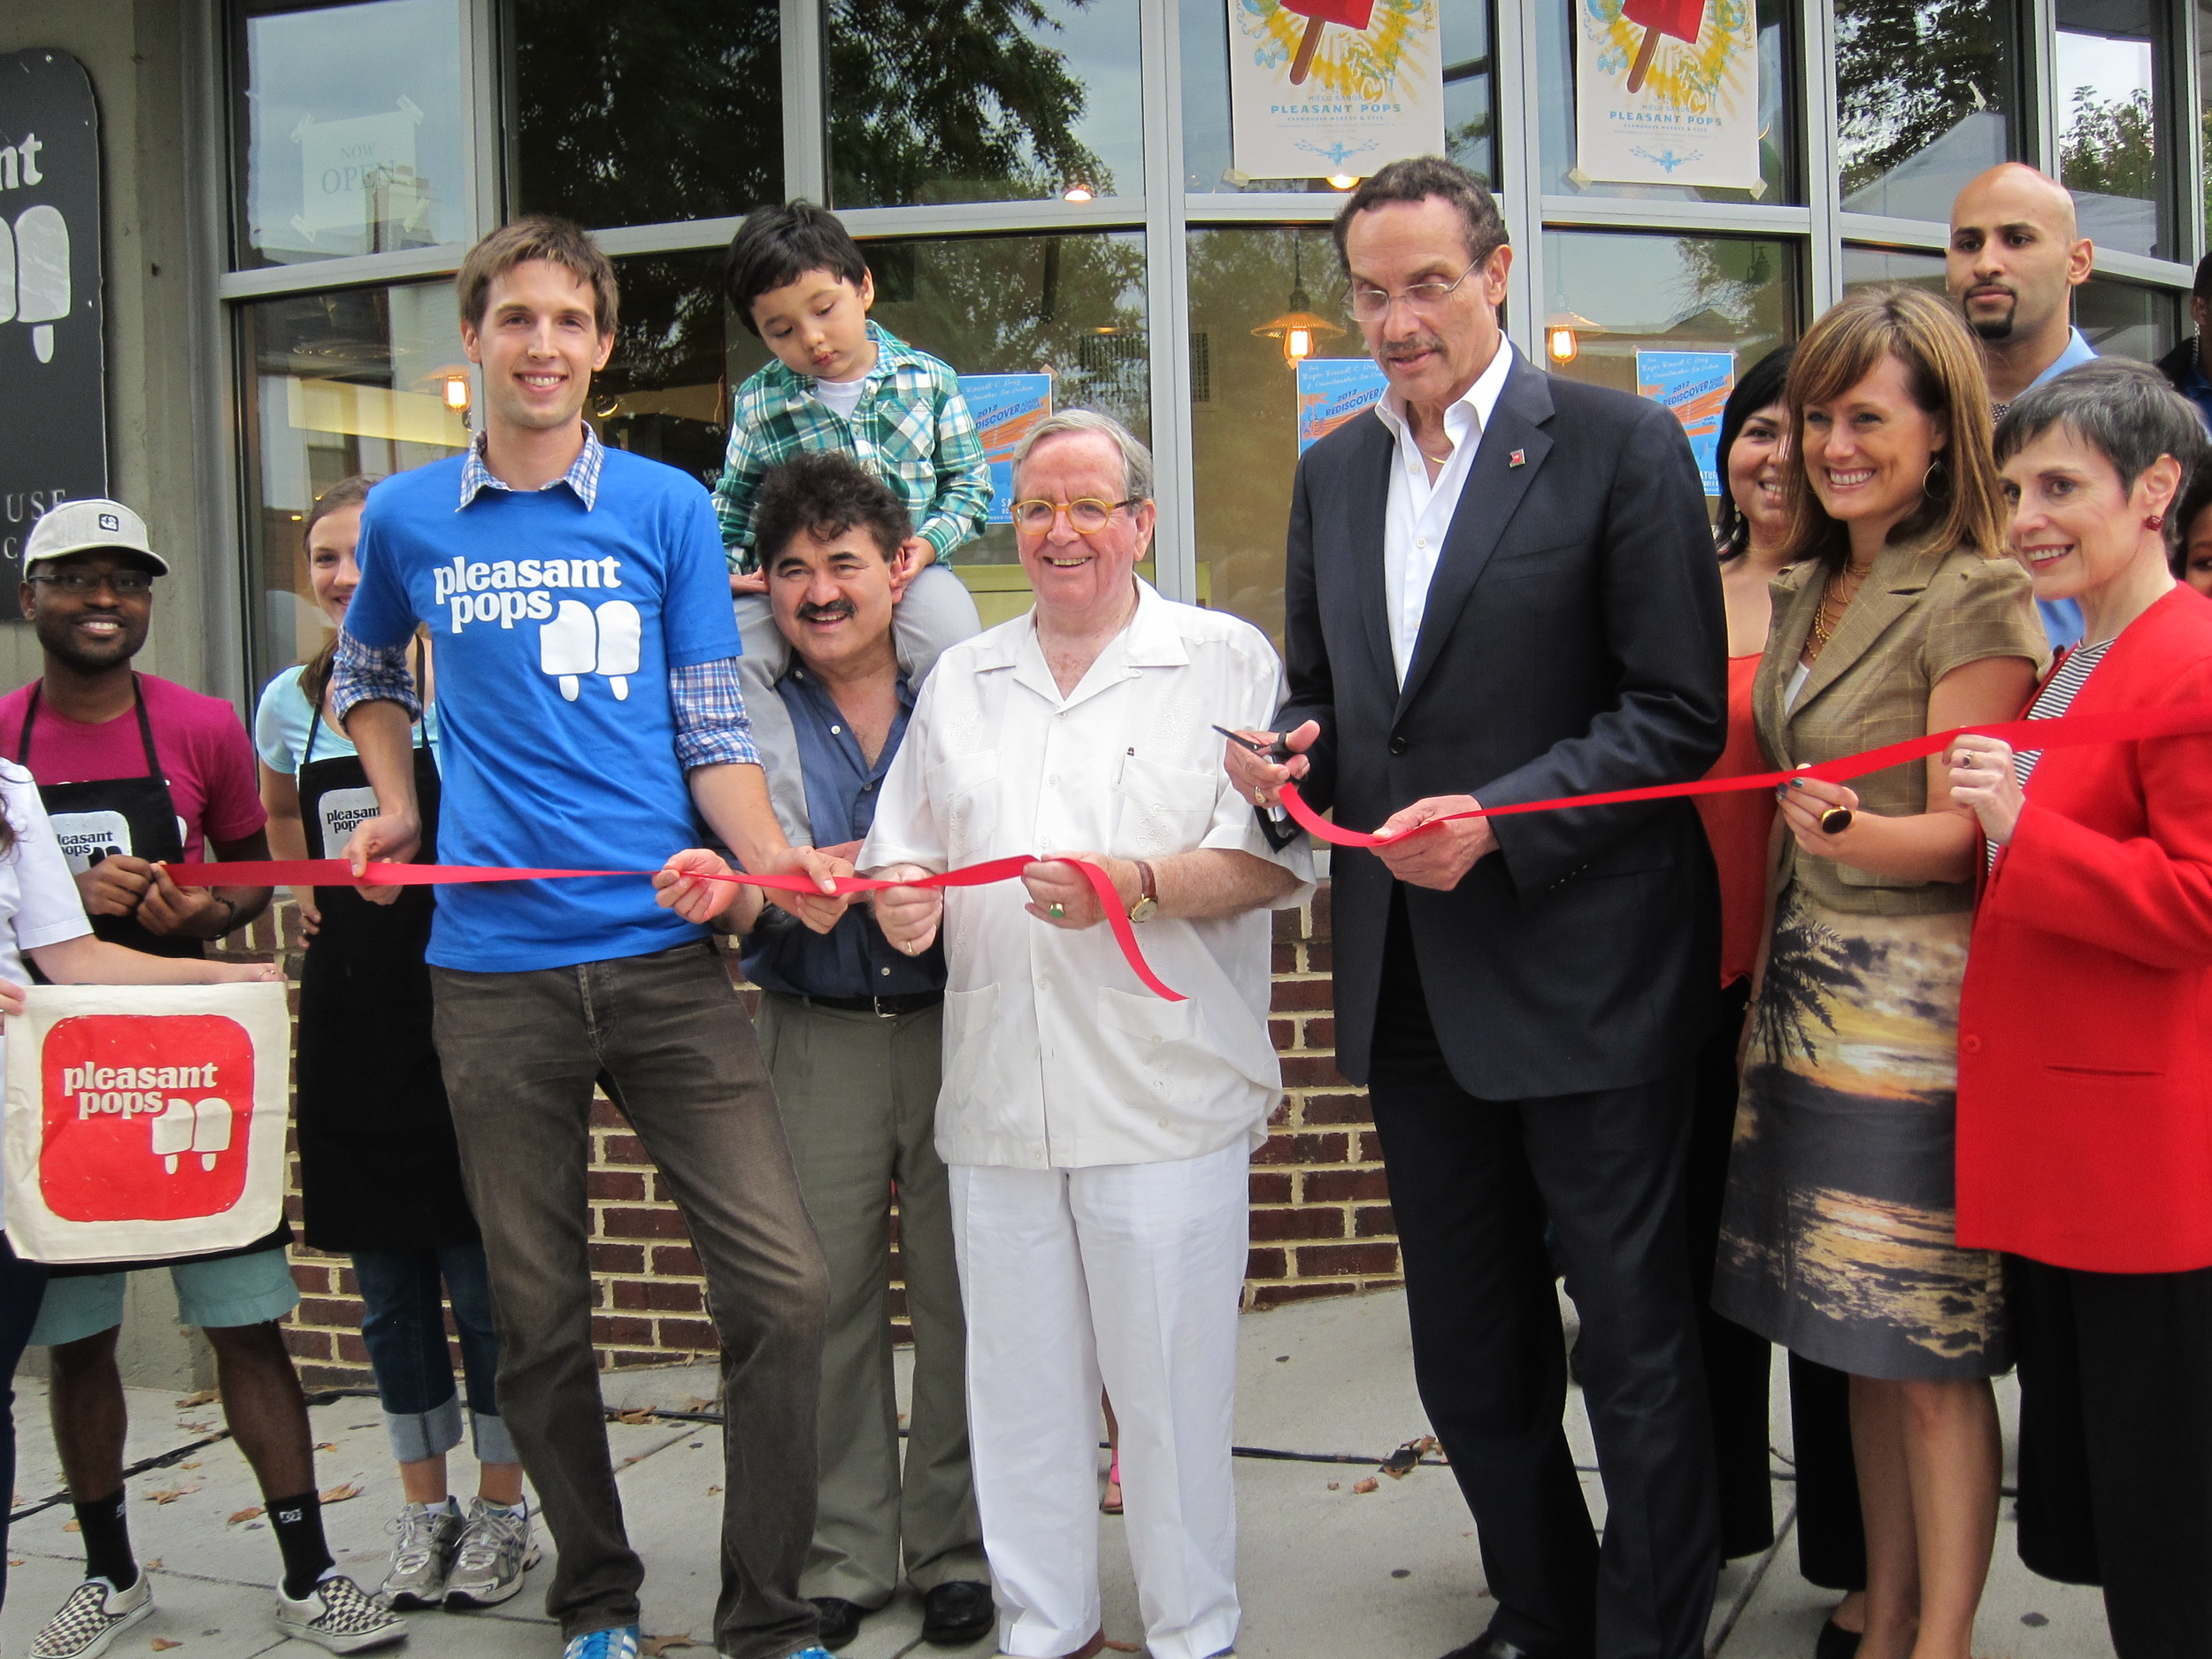 Ribbon cutting with DC Mayor Vincent Gray and Ward One Councilmember Jim Graham